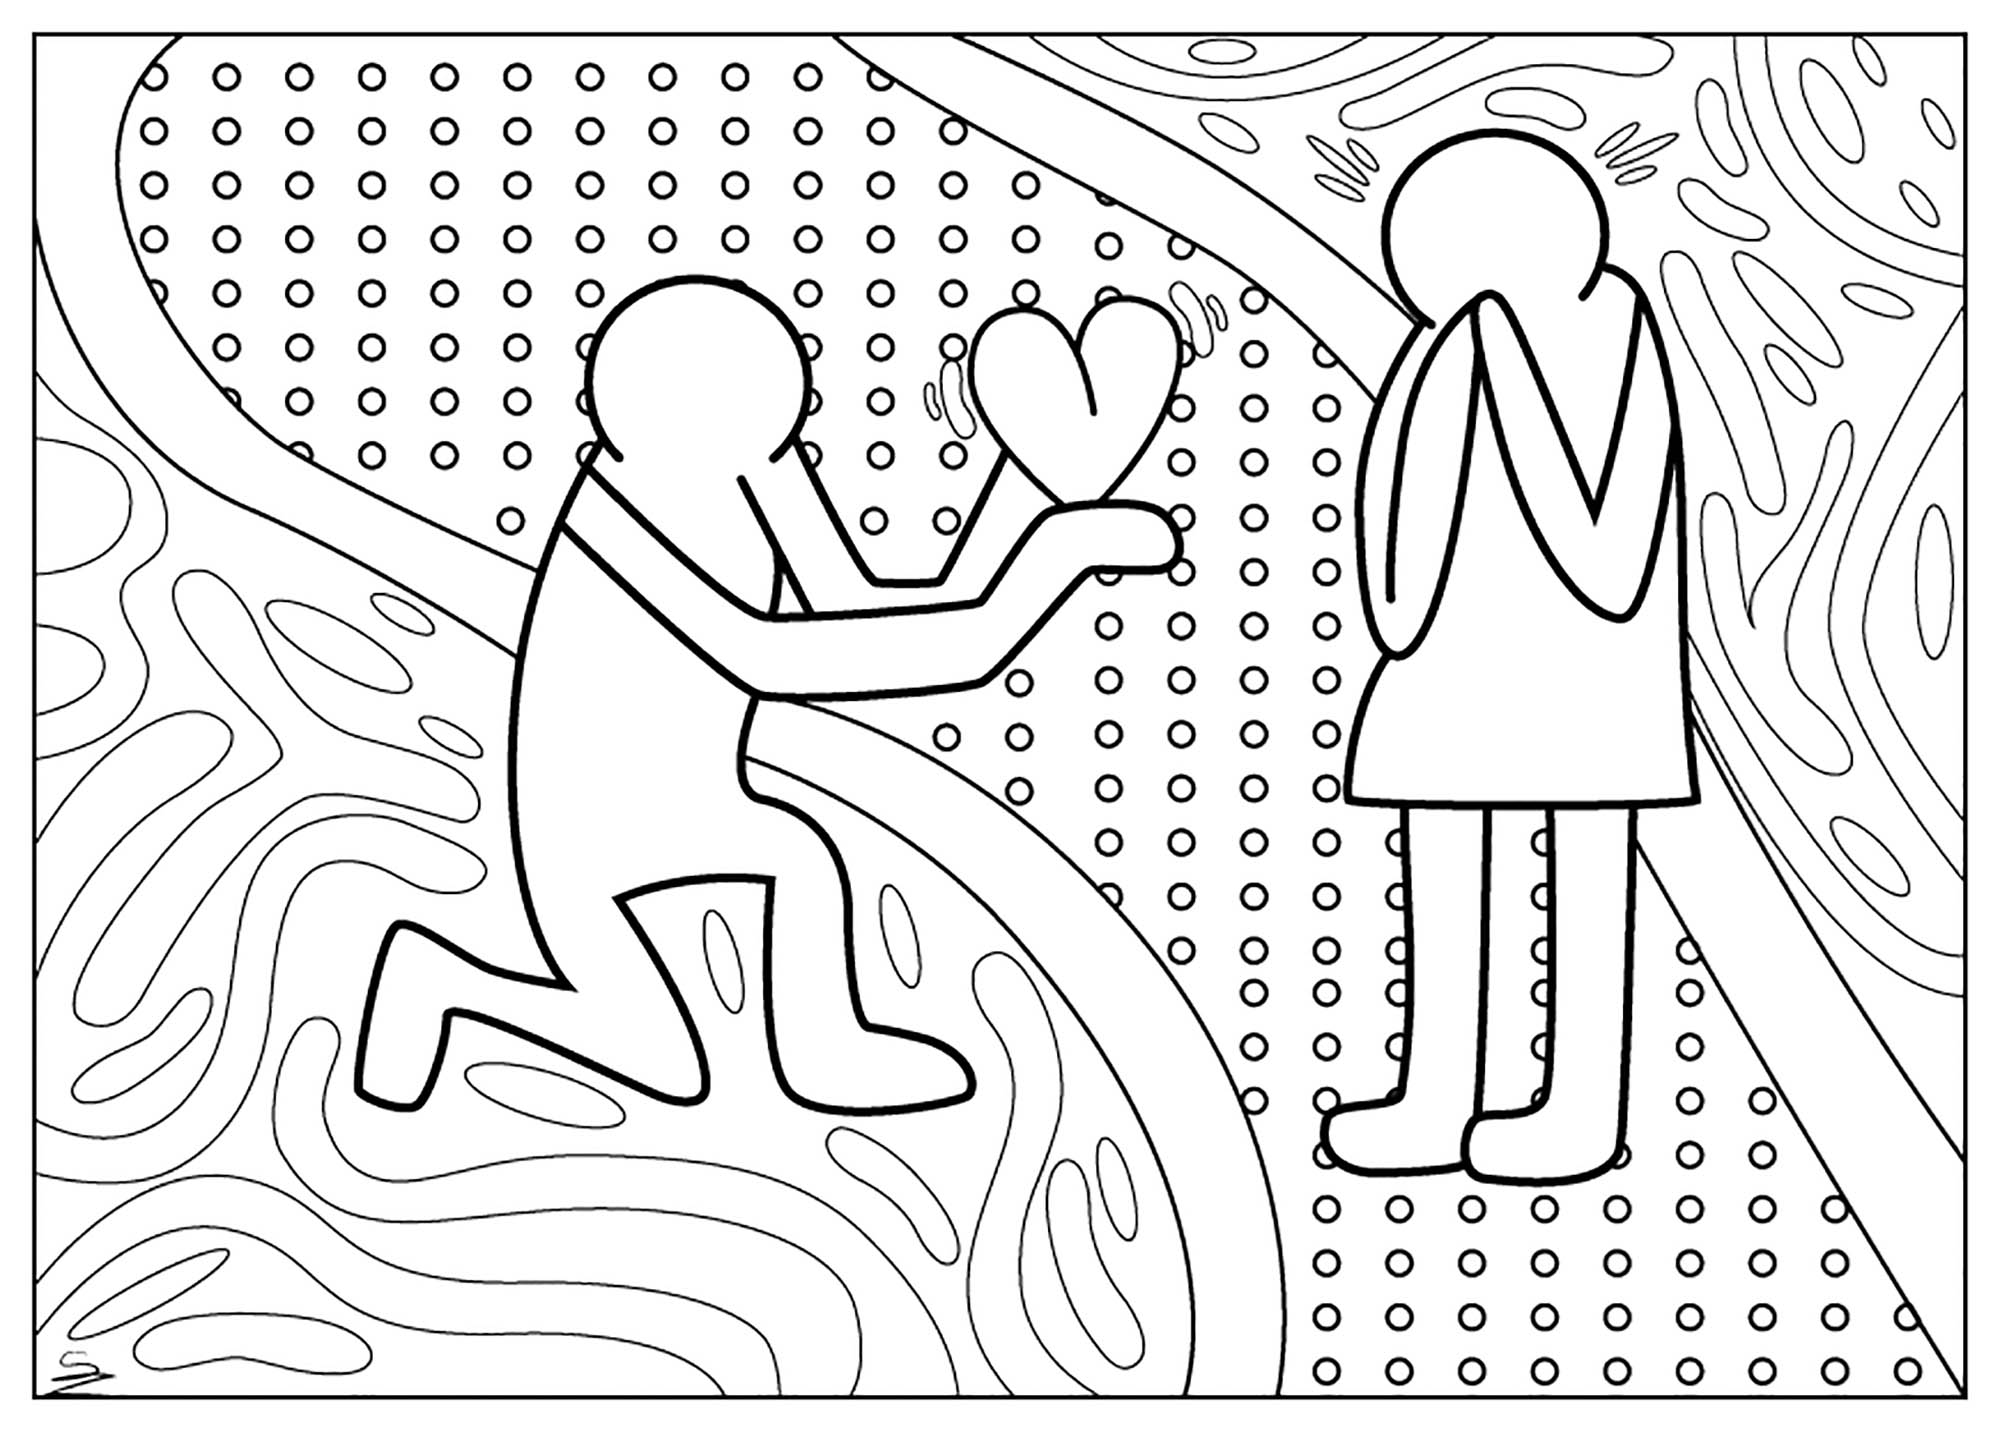 Coloring page adult valentine keith haring day by juline